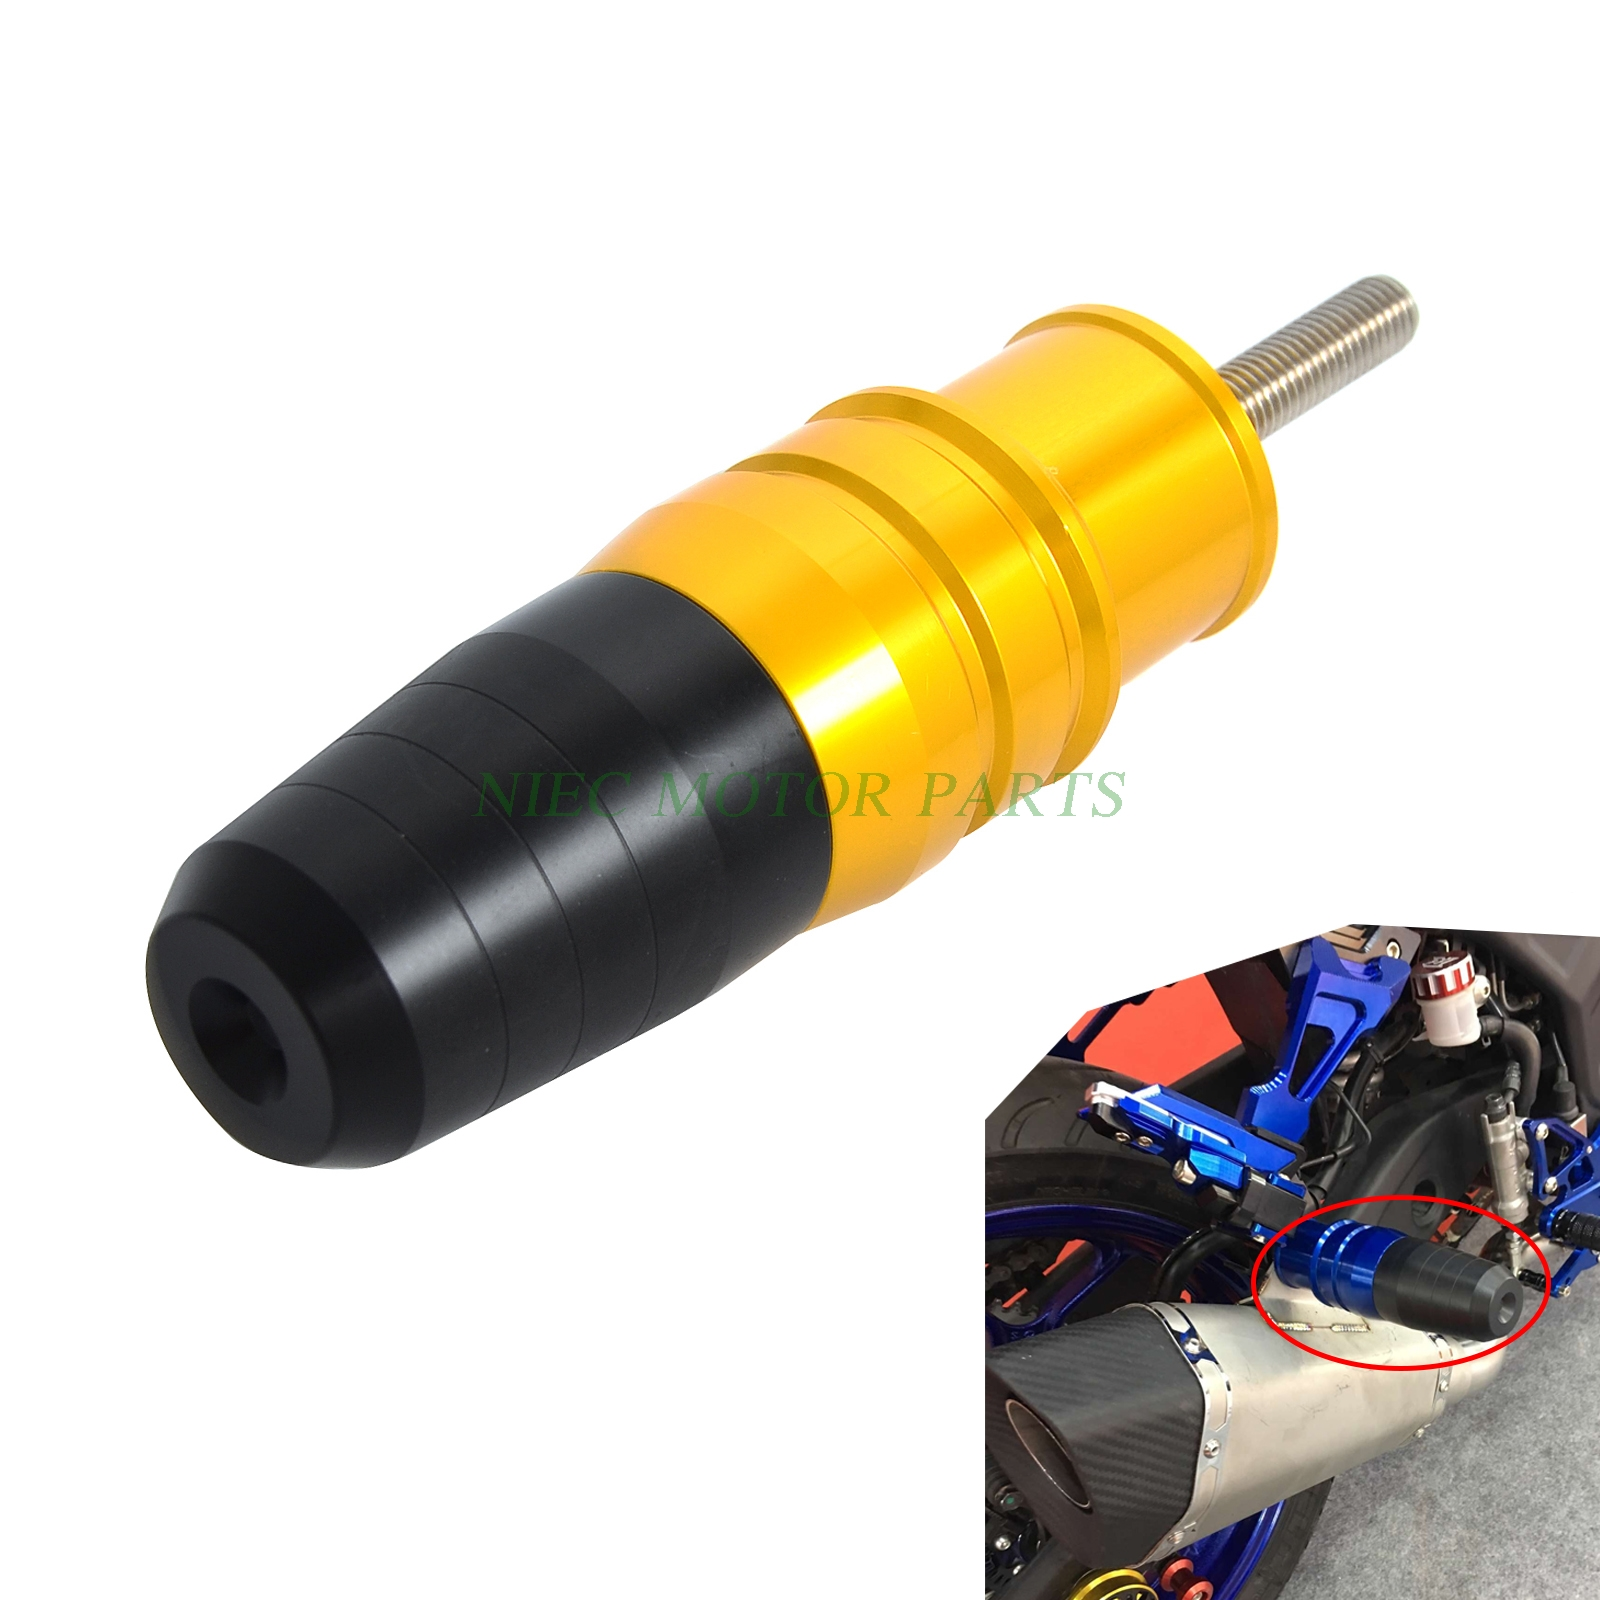 Motorcycle Crash Pads Exhaust Sliders Body Protector For KAWASAKI ZX-10R ZX10R 2016